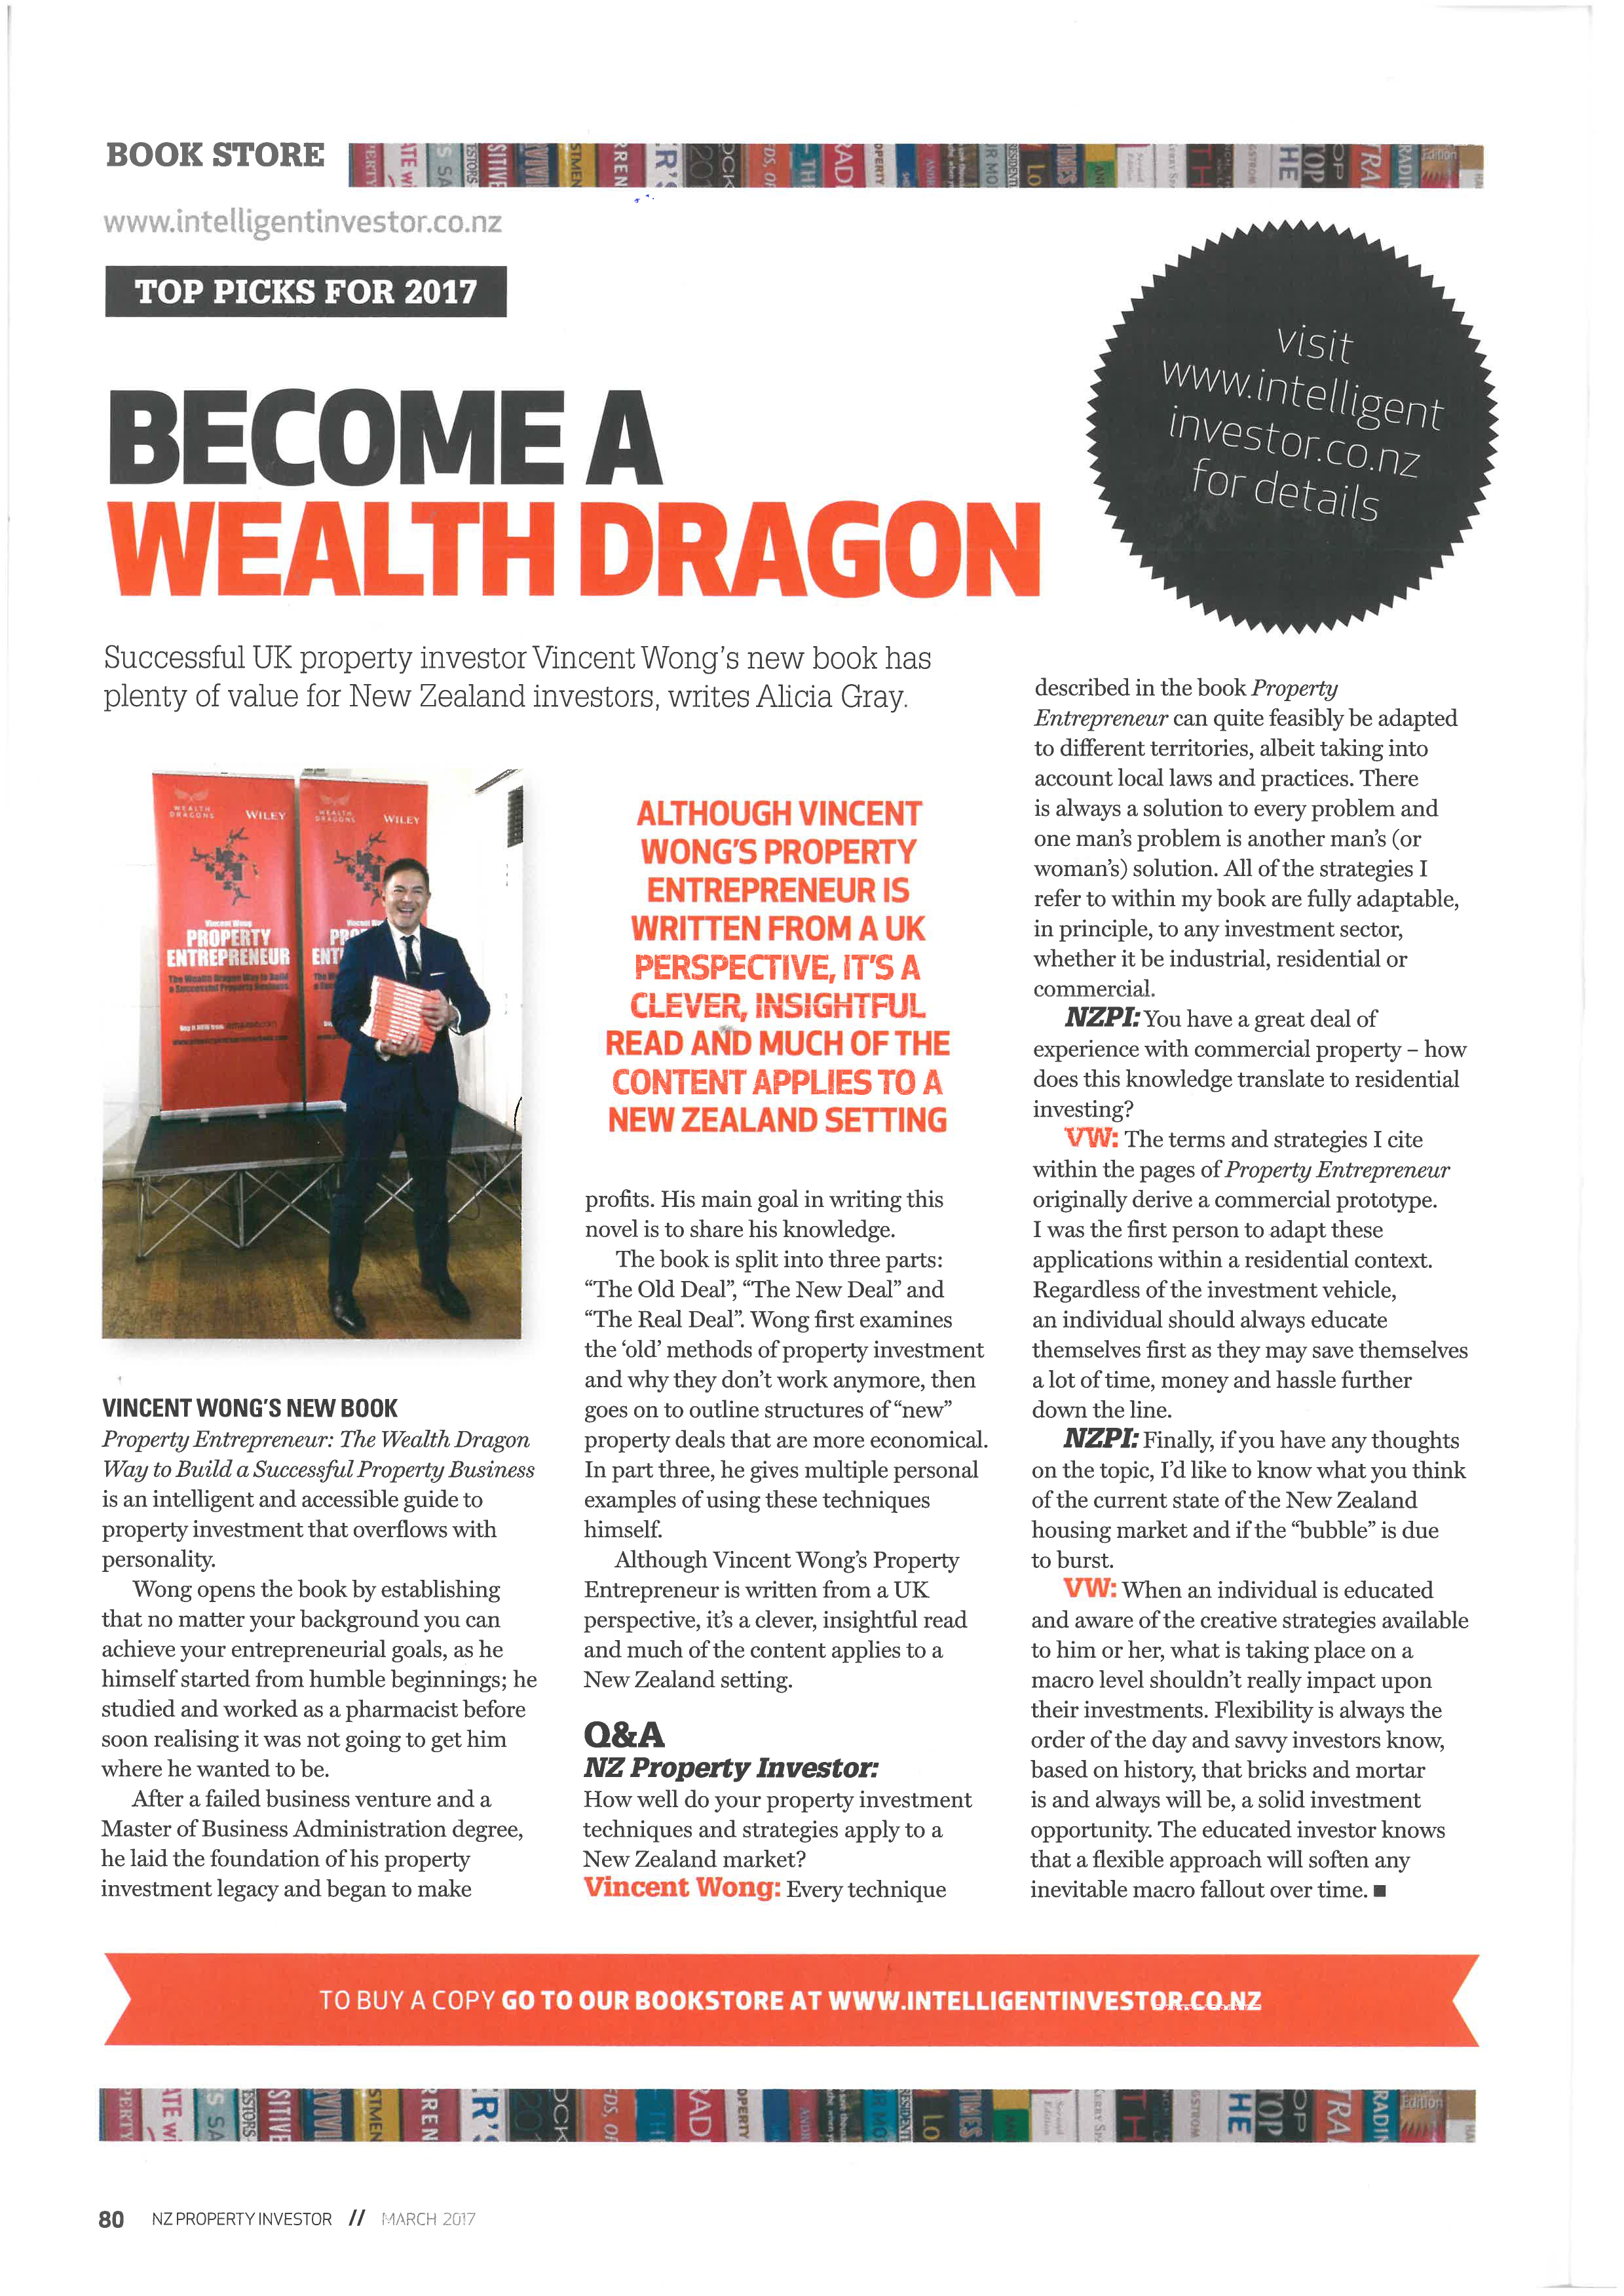 Intelligent Investors New Zealand - Become a Wealth Dragon